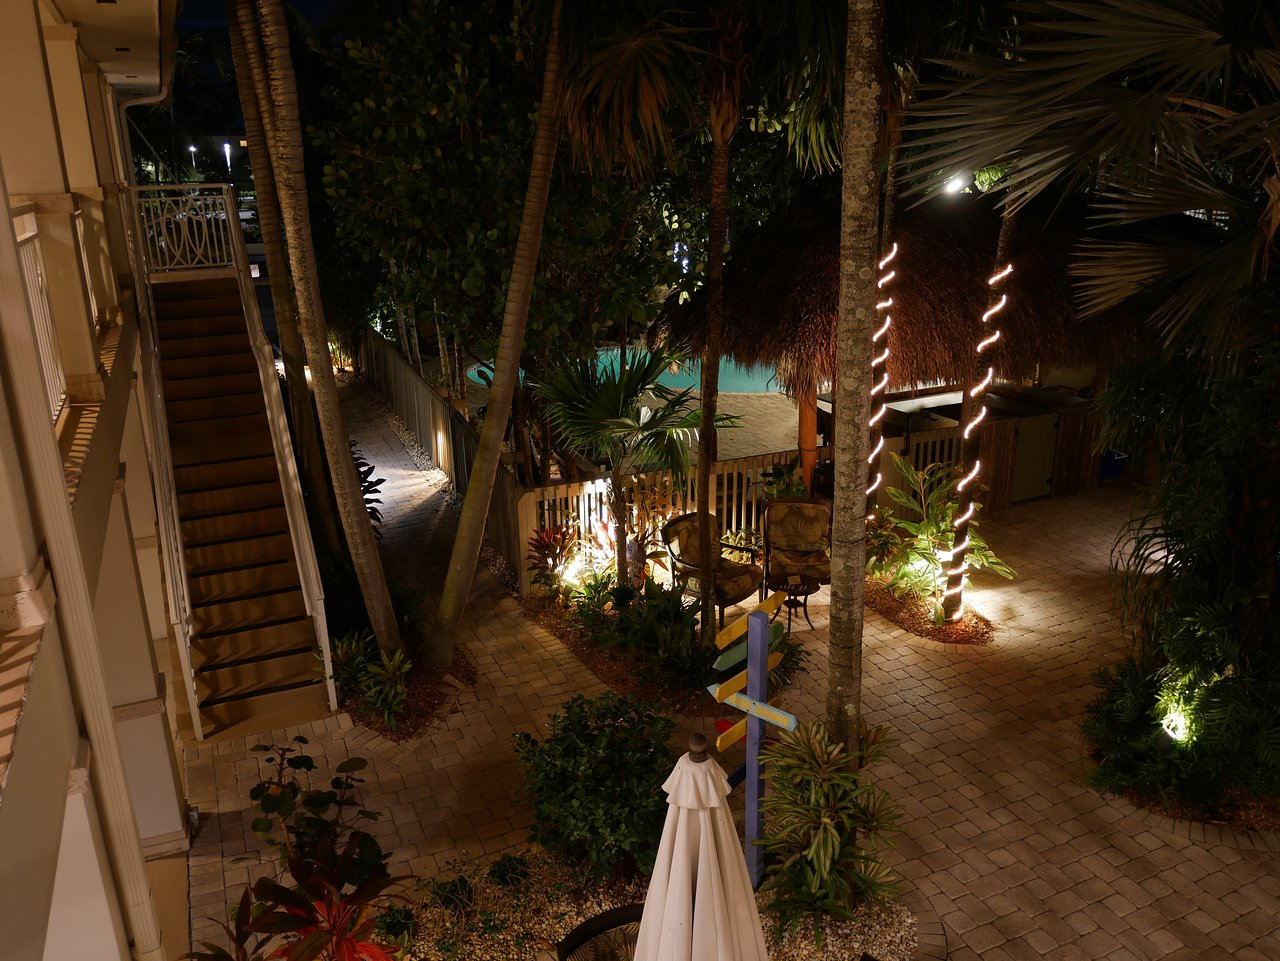 Crane S Beach House Boutique Hotel Luxury Villas 164 2 1 9 Updated 2018 Prices Reviews Delray Fl Tripadvisor